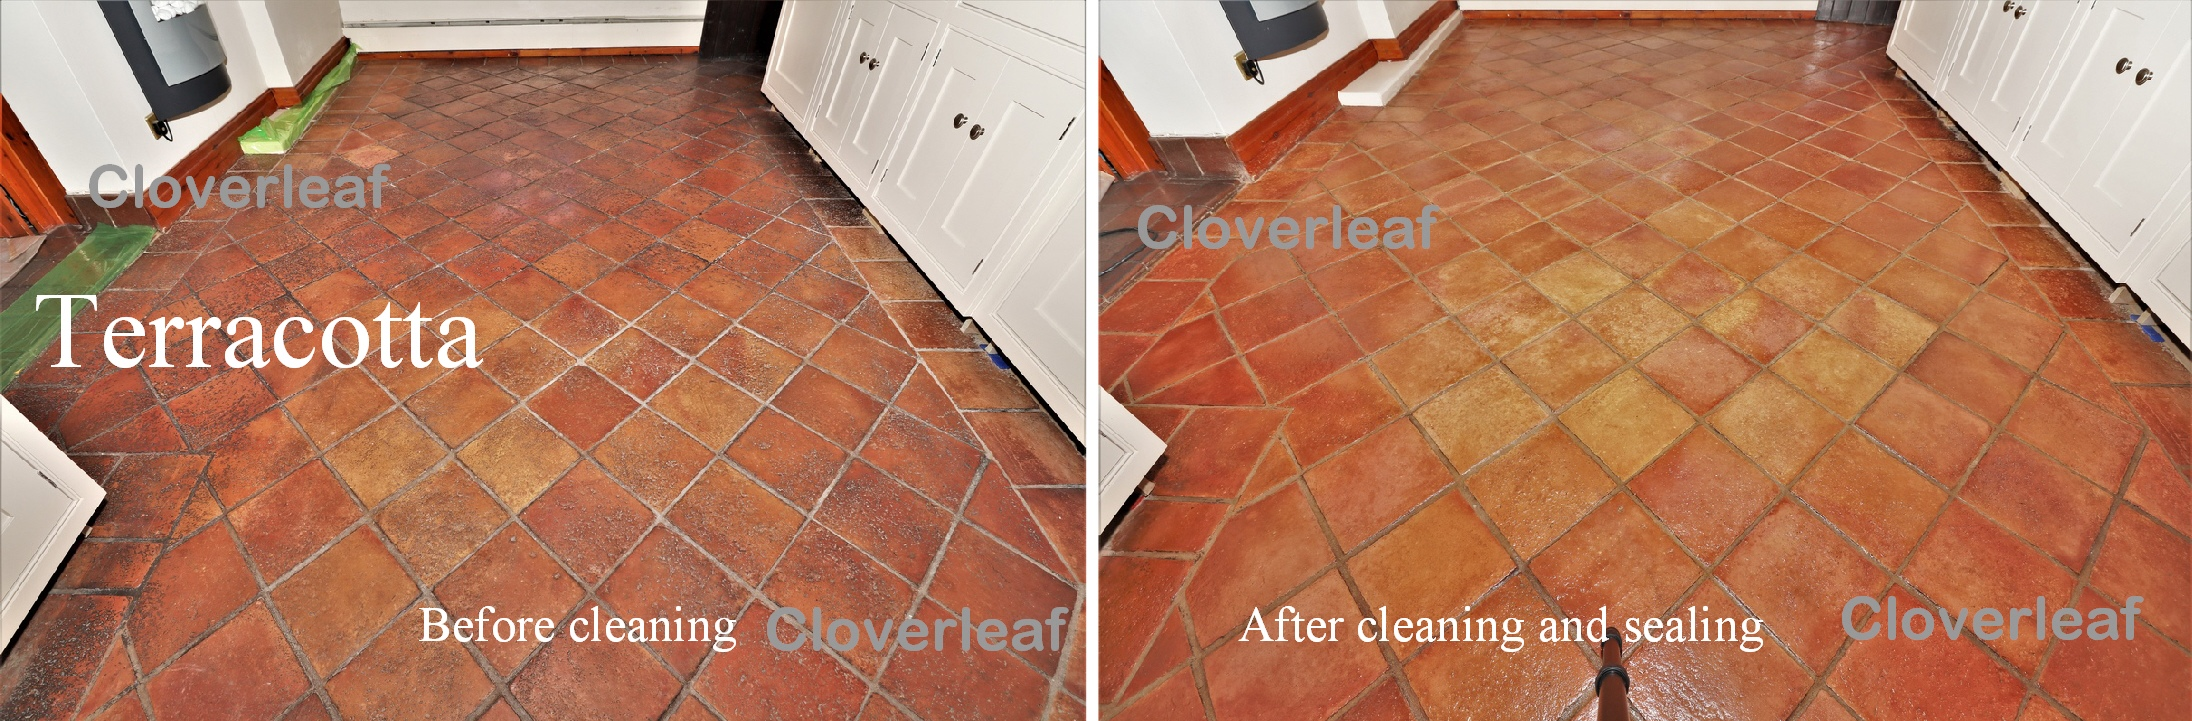 Terracotta floor tiles before and after cleaning